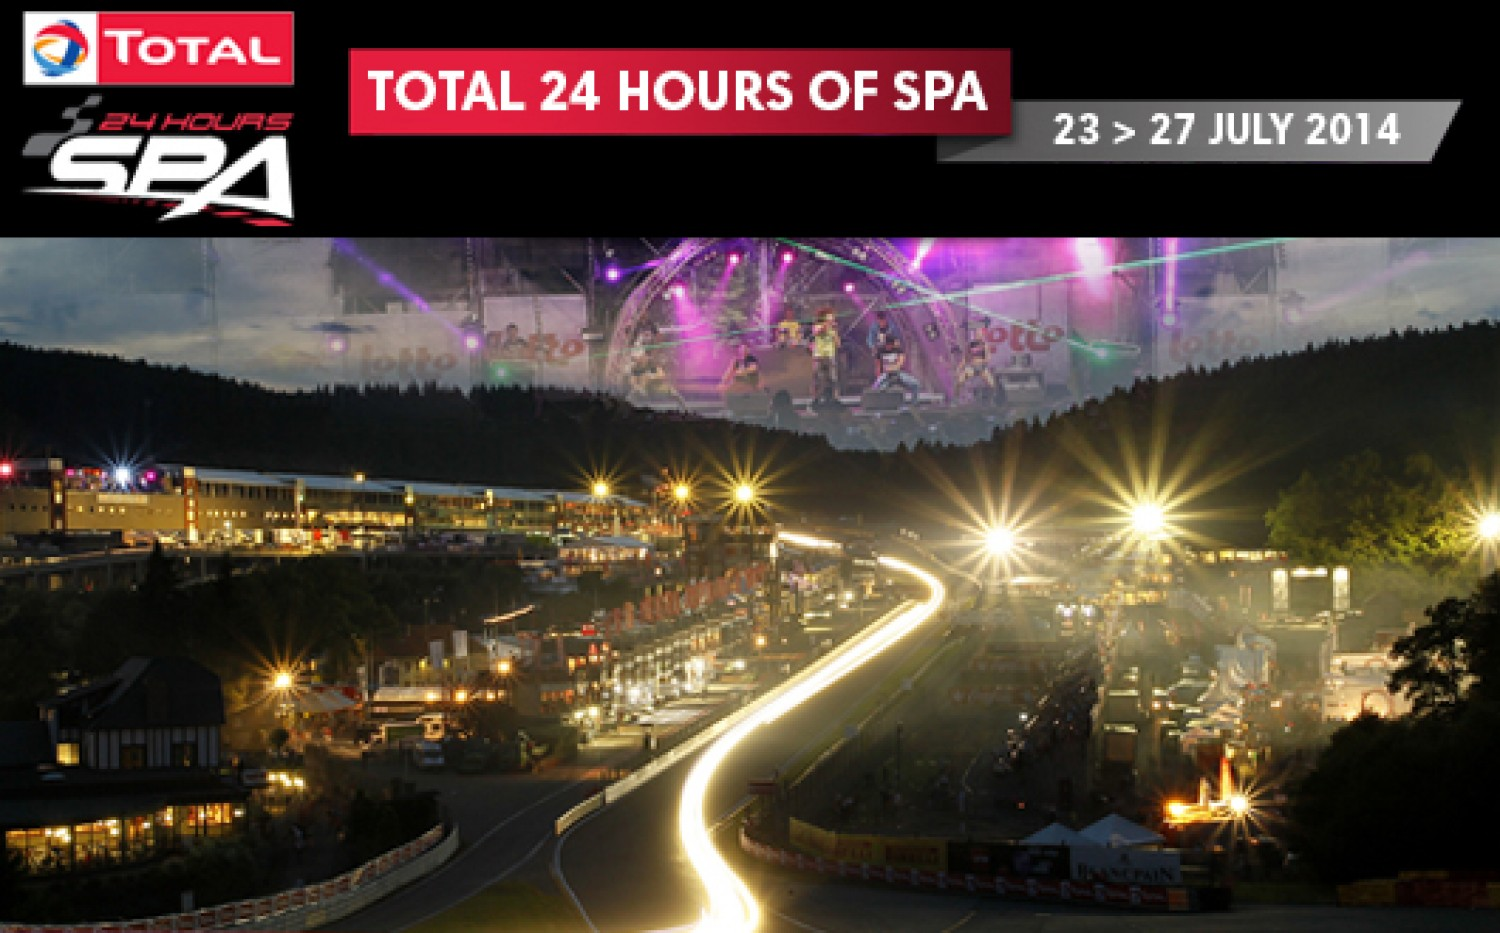 Tickets for the Total 24 Hours of Spa now on sale